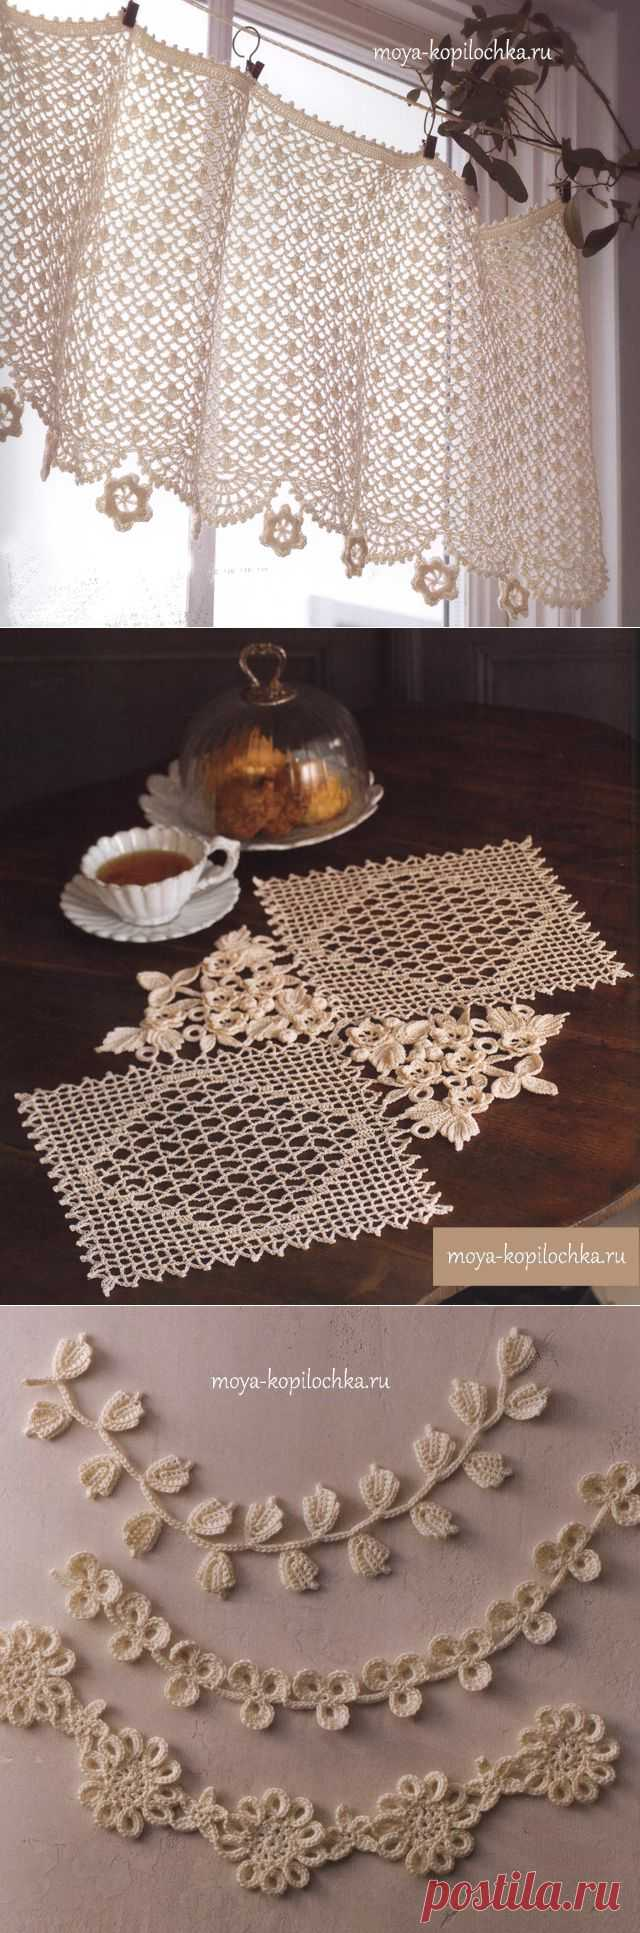 36 options of a vintage decor with elements of the Irish lace - Knitting - my kopilochka